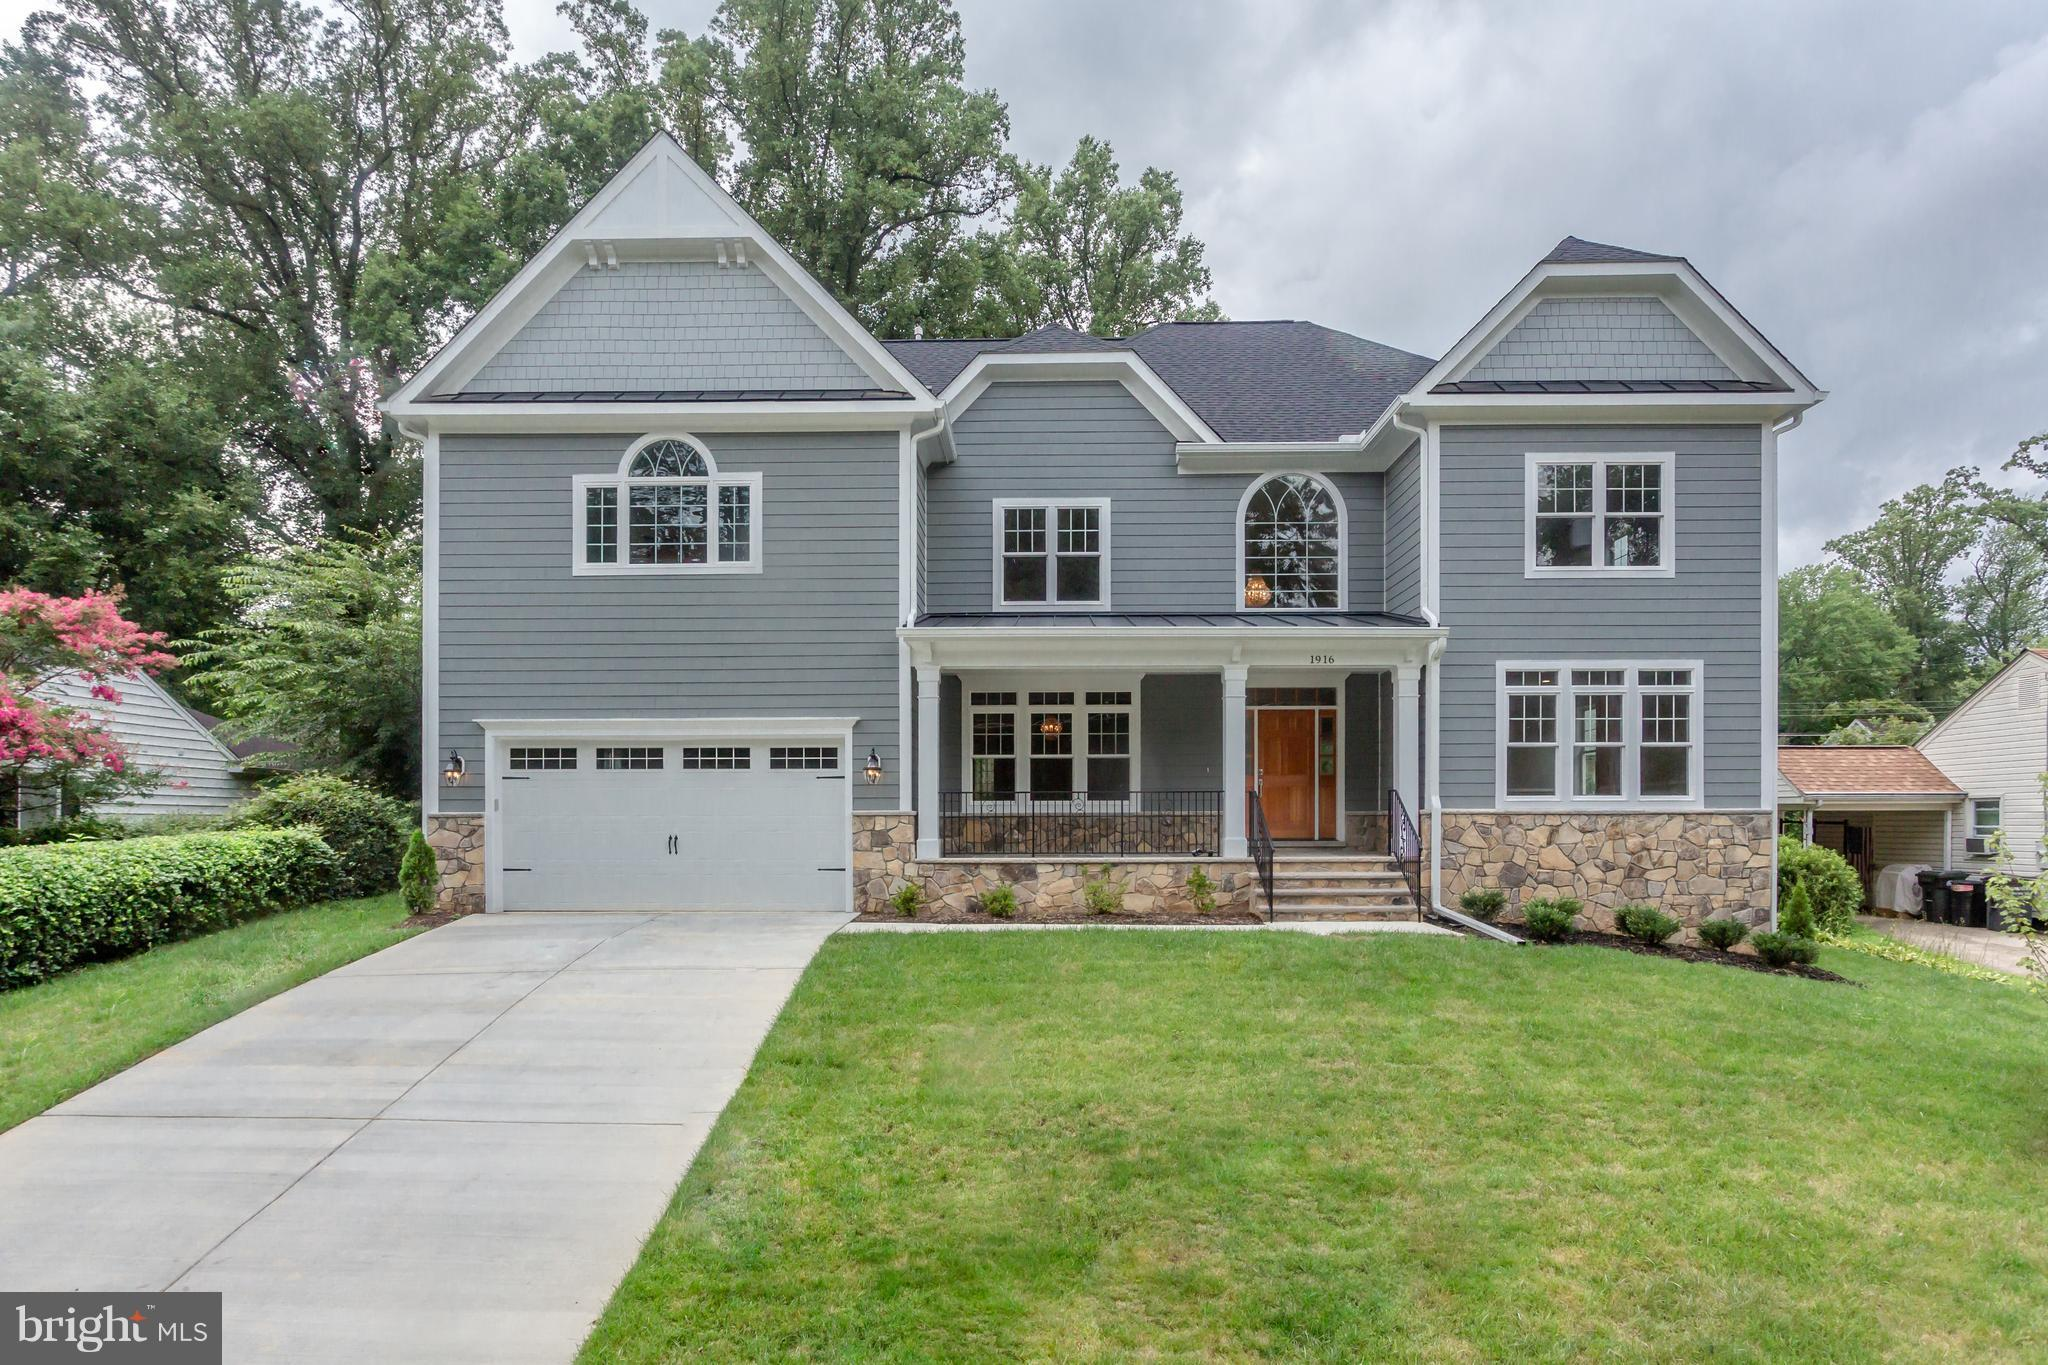 1916 STORM DRIVE, FALLS CHURCH, VA 22043